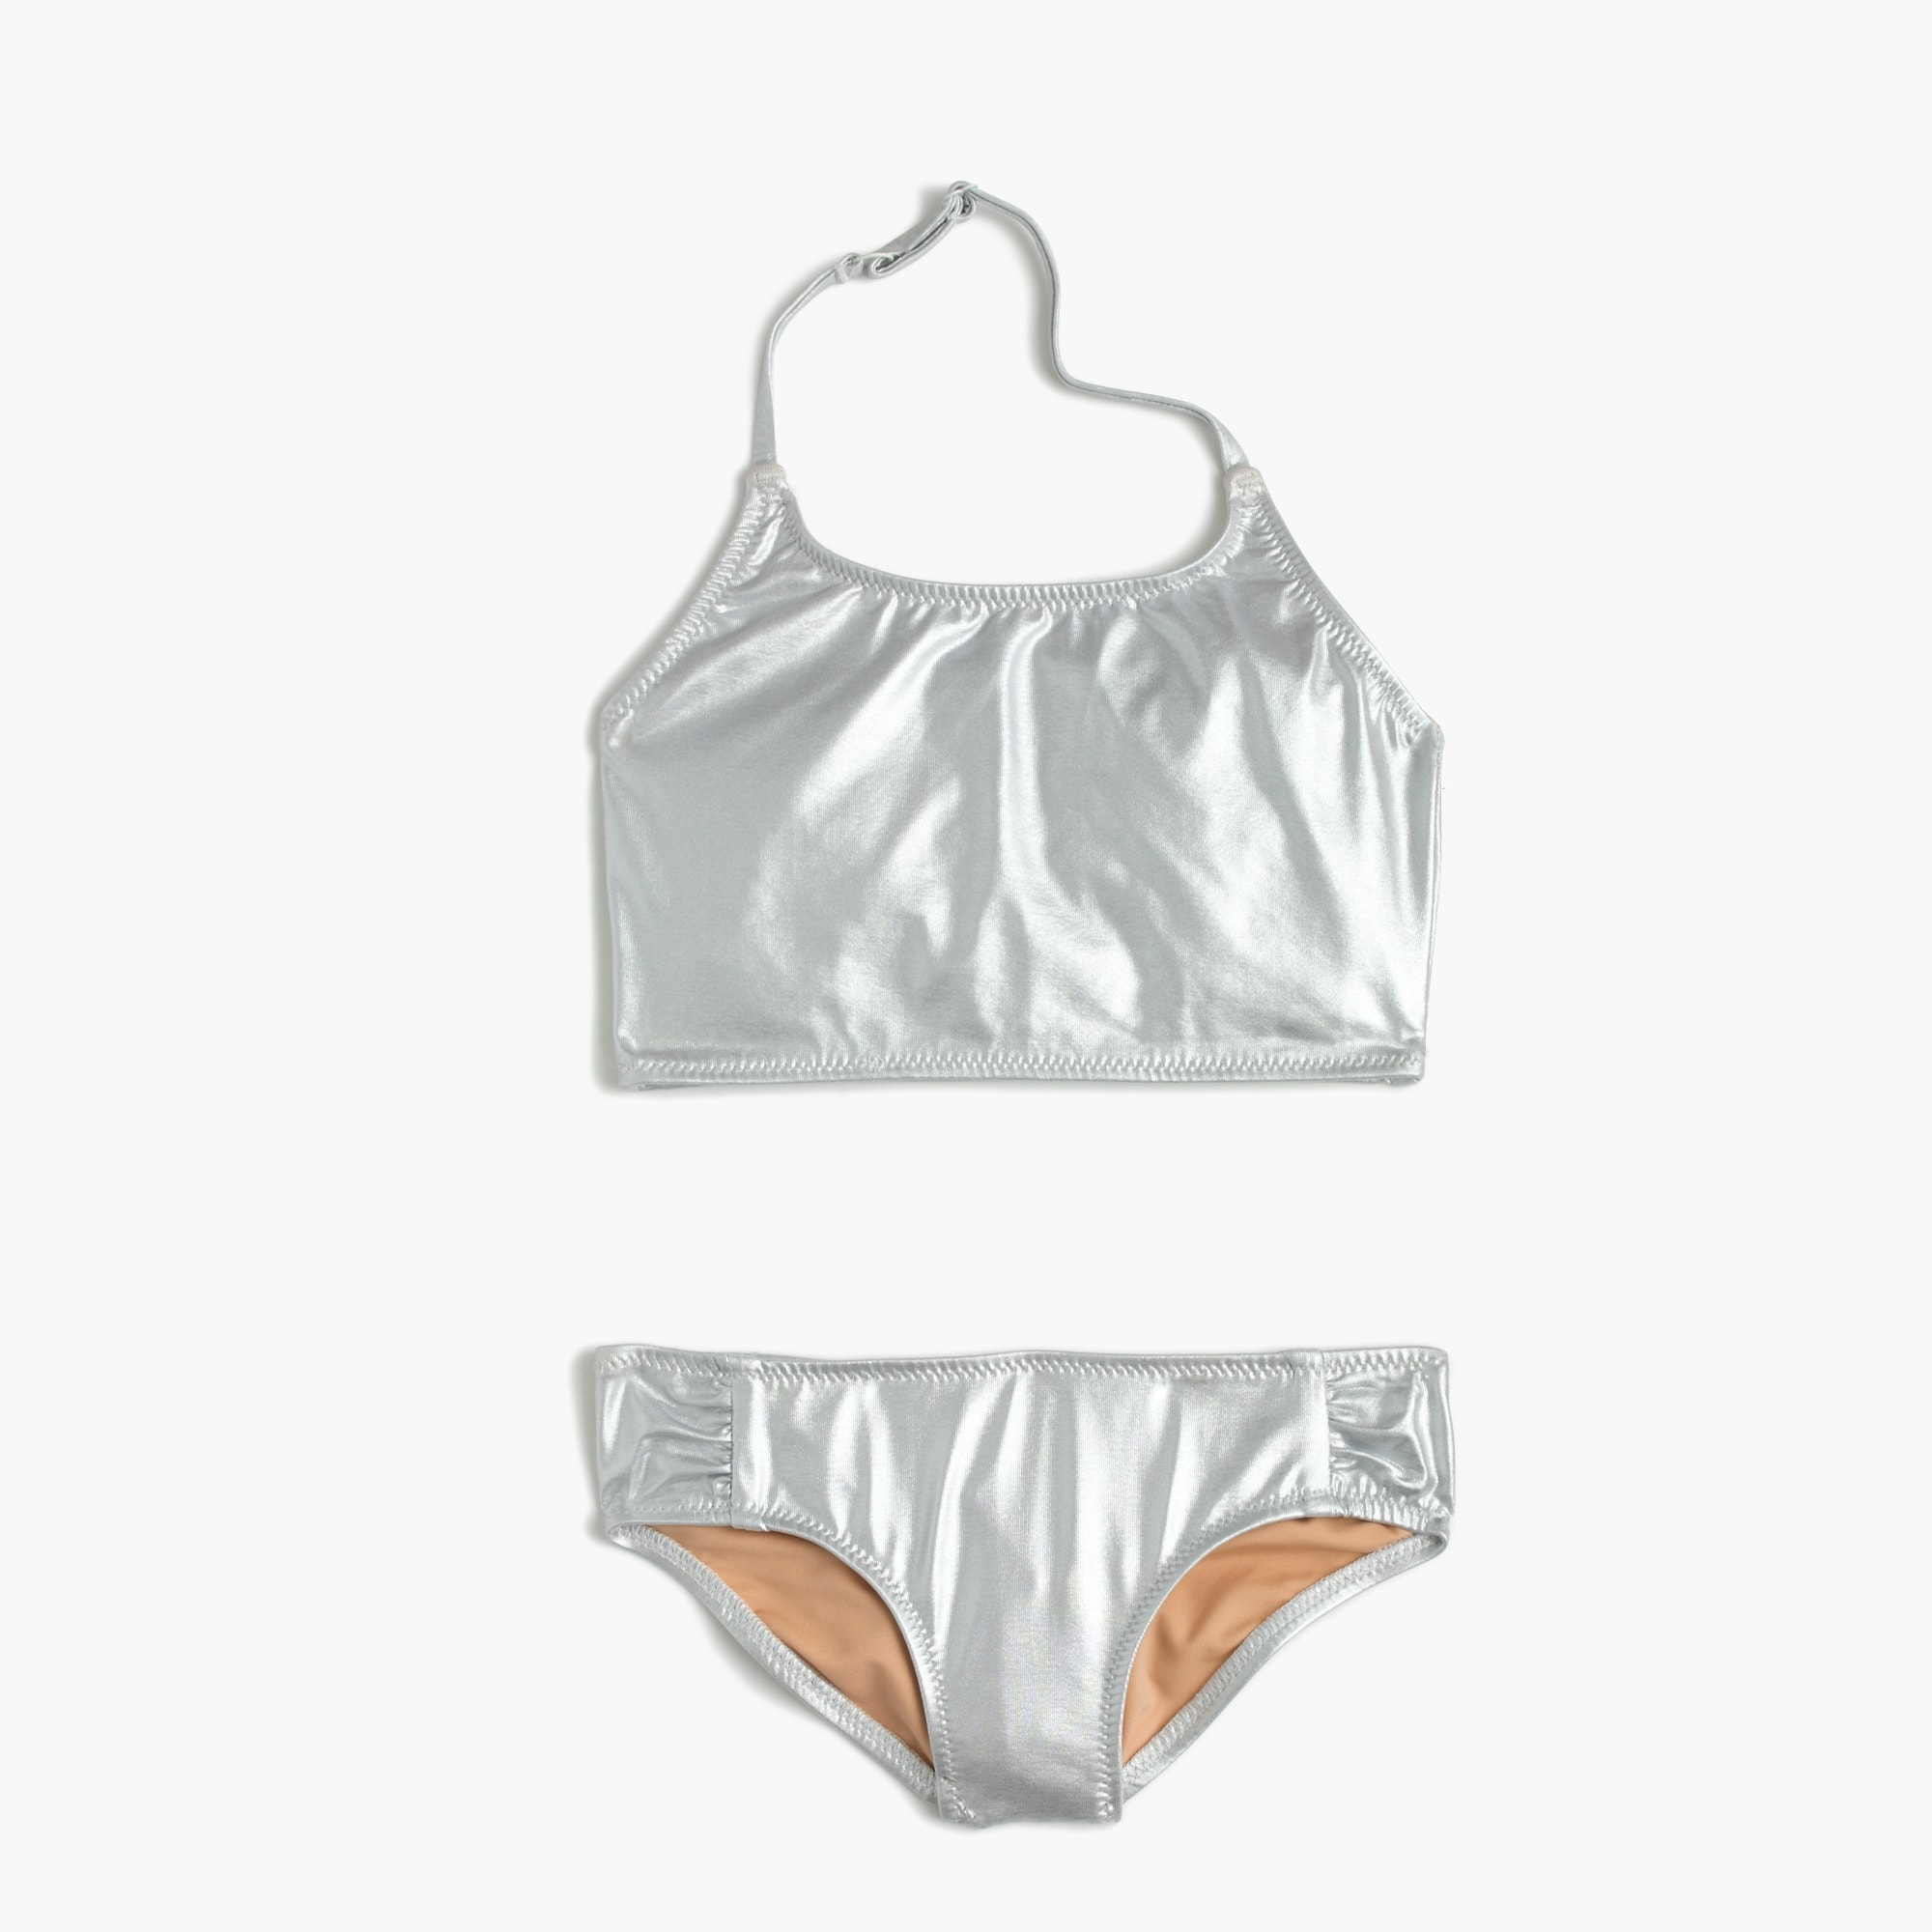 Girls' metallic cropped tankini set